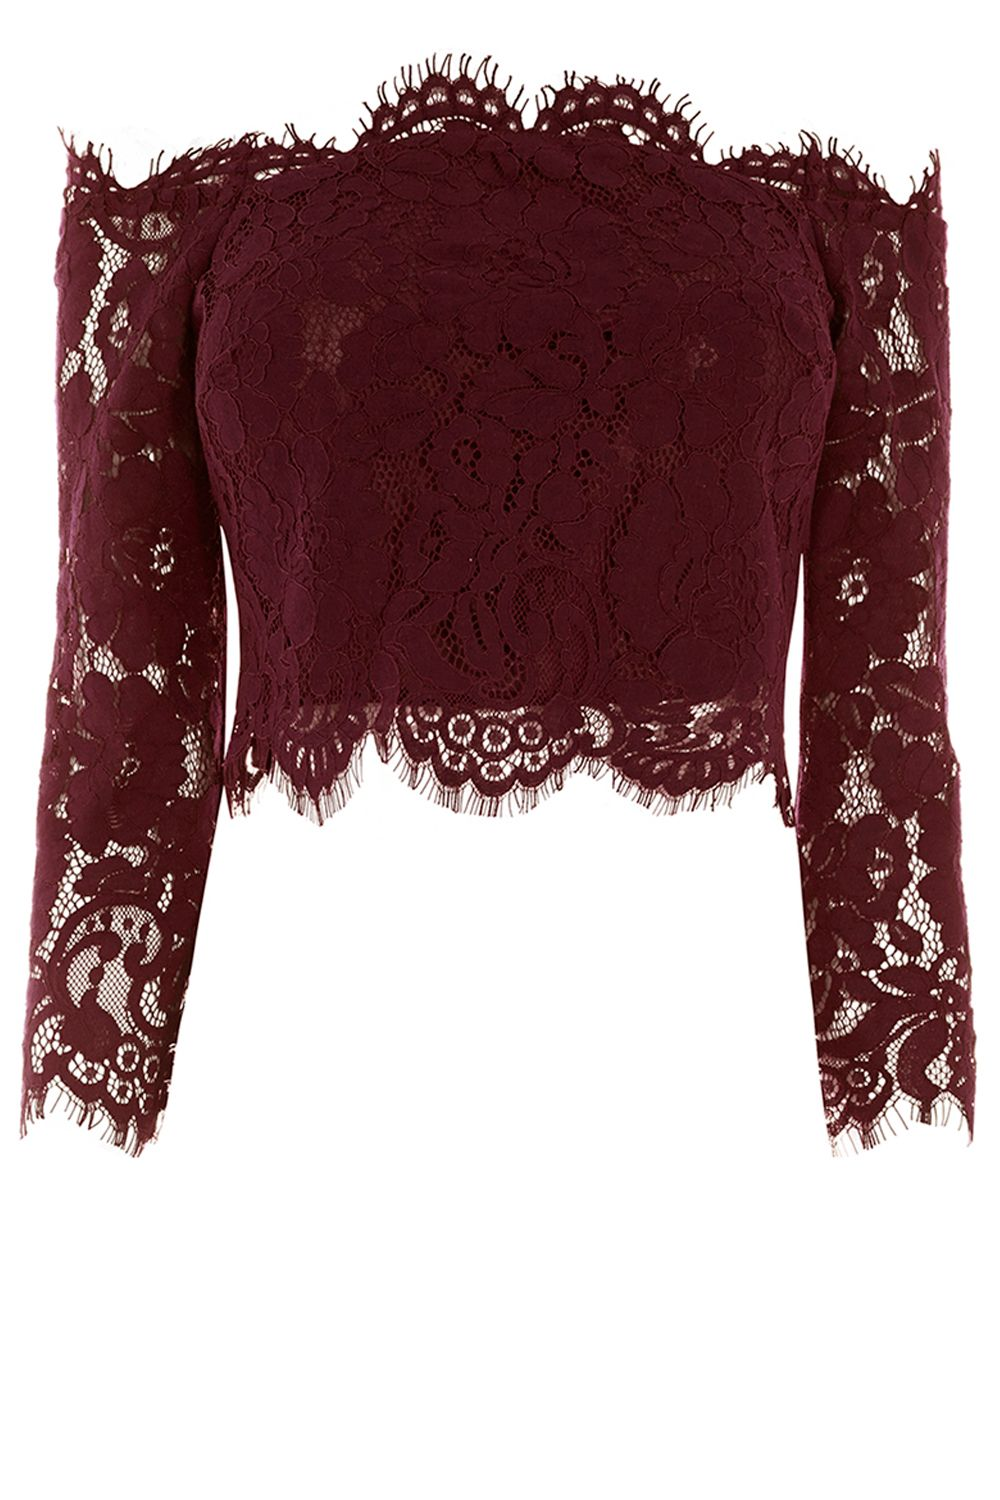 Coast Marr Lace Bridesmaids Top, Wine